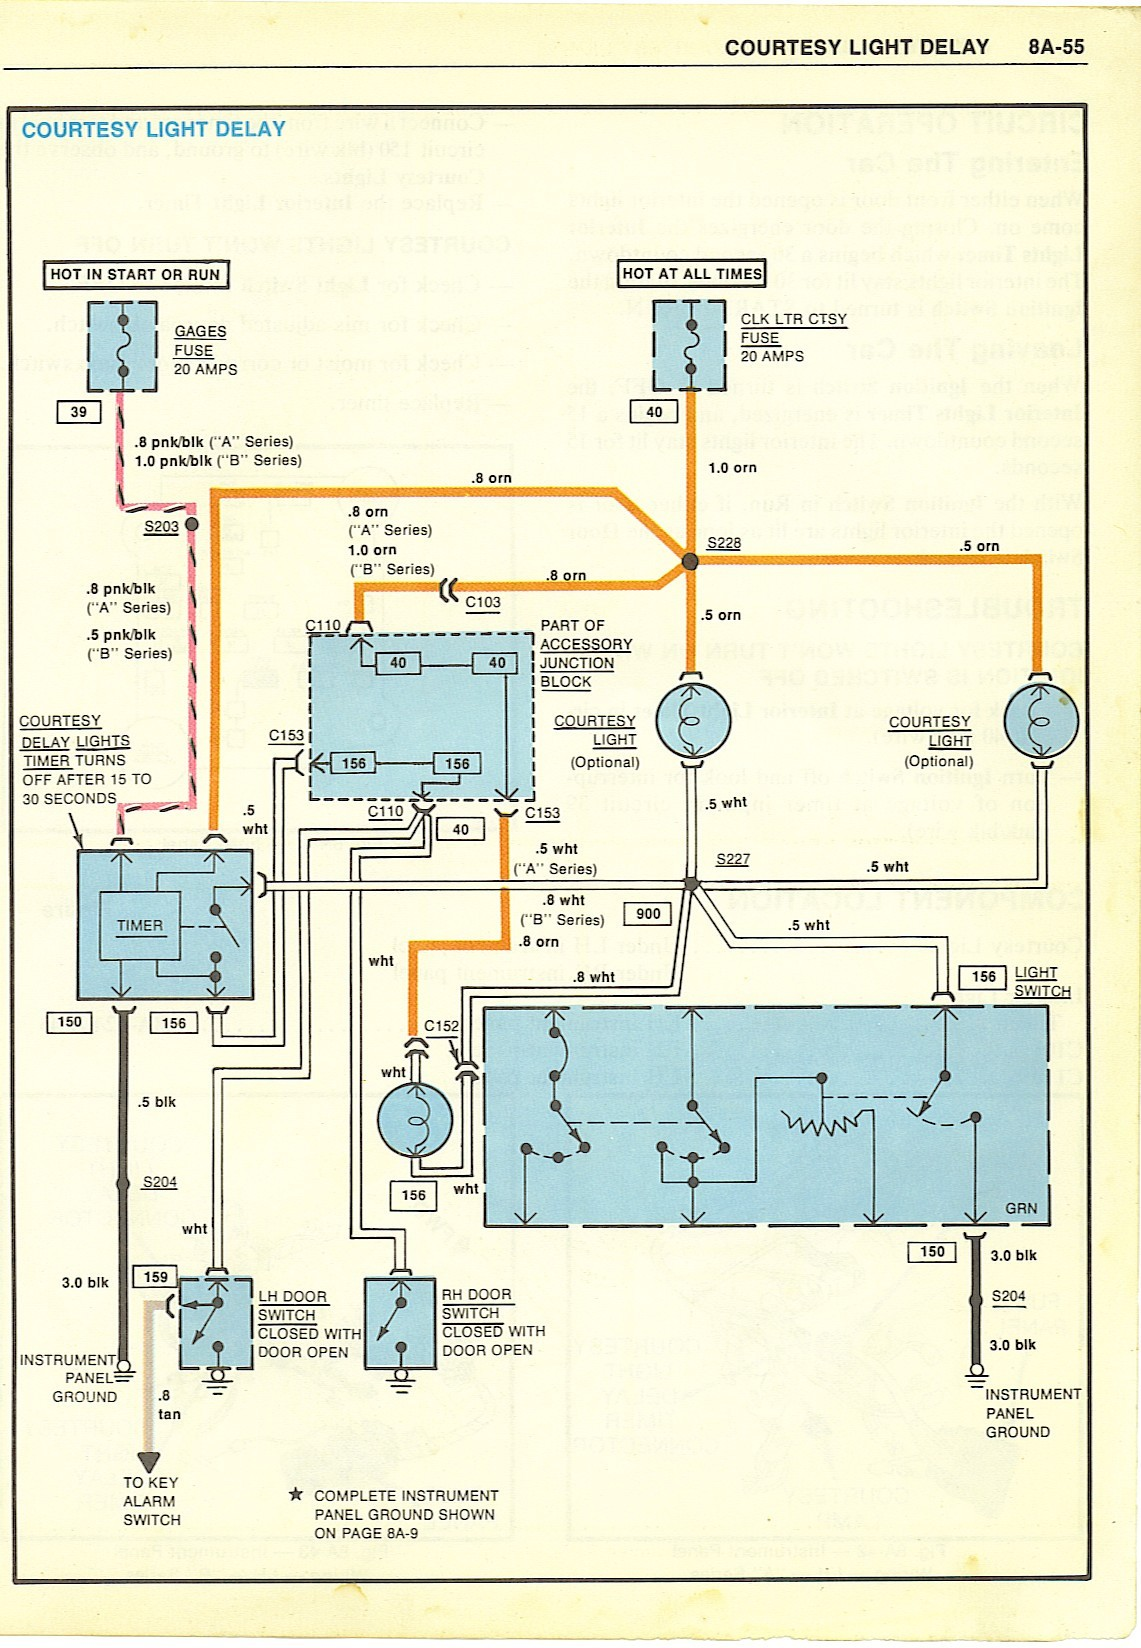 kenworth w900 wiring diagram best of part 37 wiring diagram electrical wiring circuit diagram schematic of kenworth w900 wiring diagram kenworth t800 ac wiring explore wiring diagram on the net \u2022